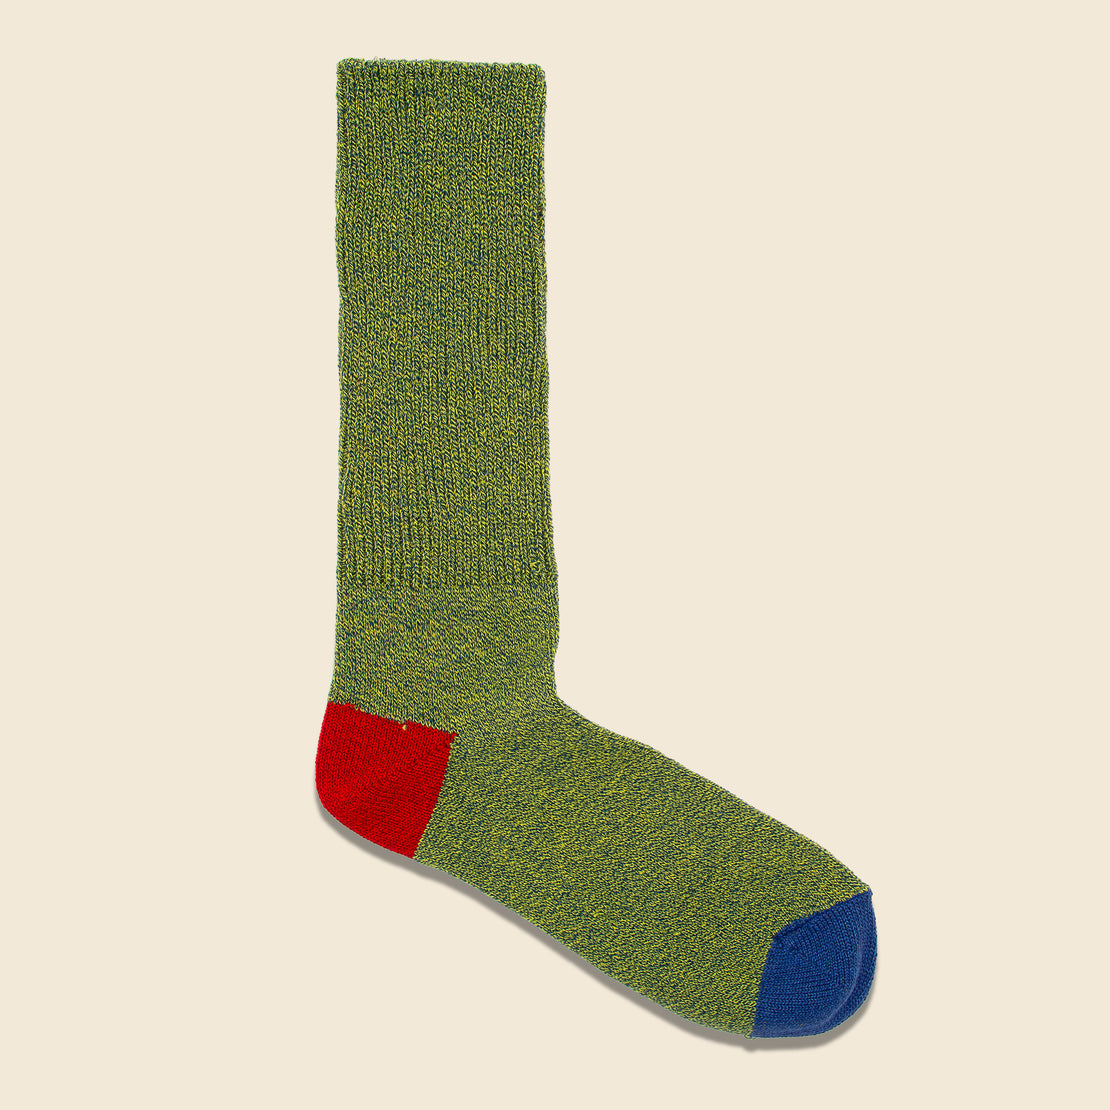 Anonymous Ism 2-Point Heel/Toe Crew Sock - Green/Red/Blue